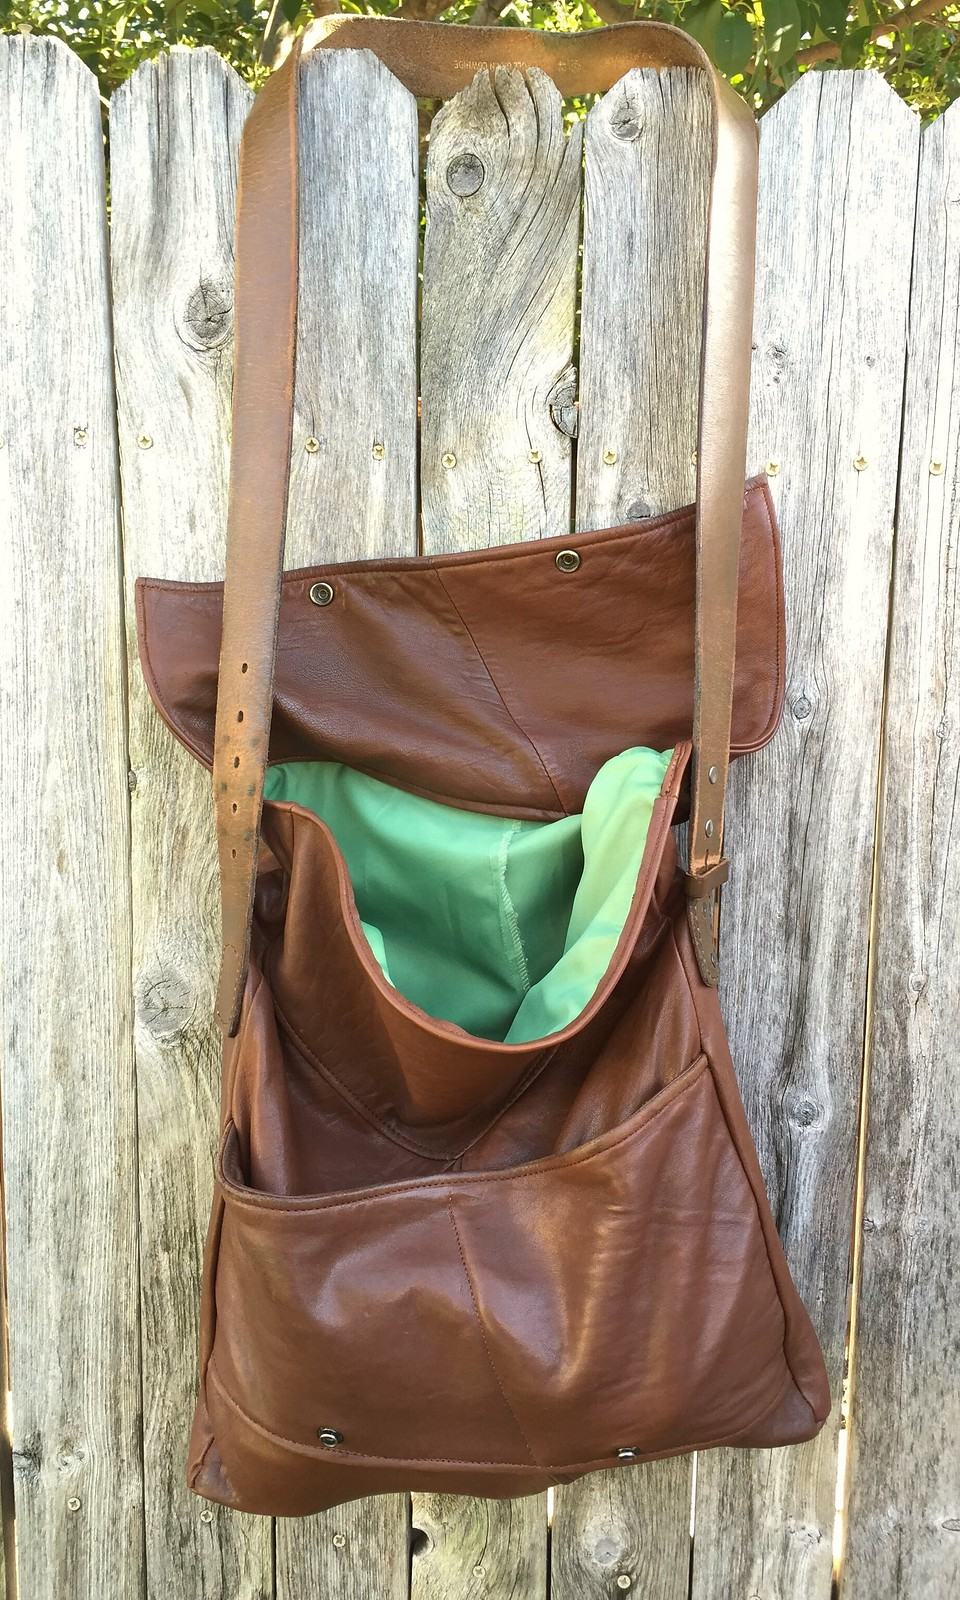 Recycled Leather Fold-Over Bag - After